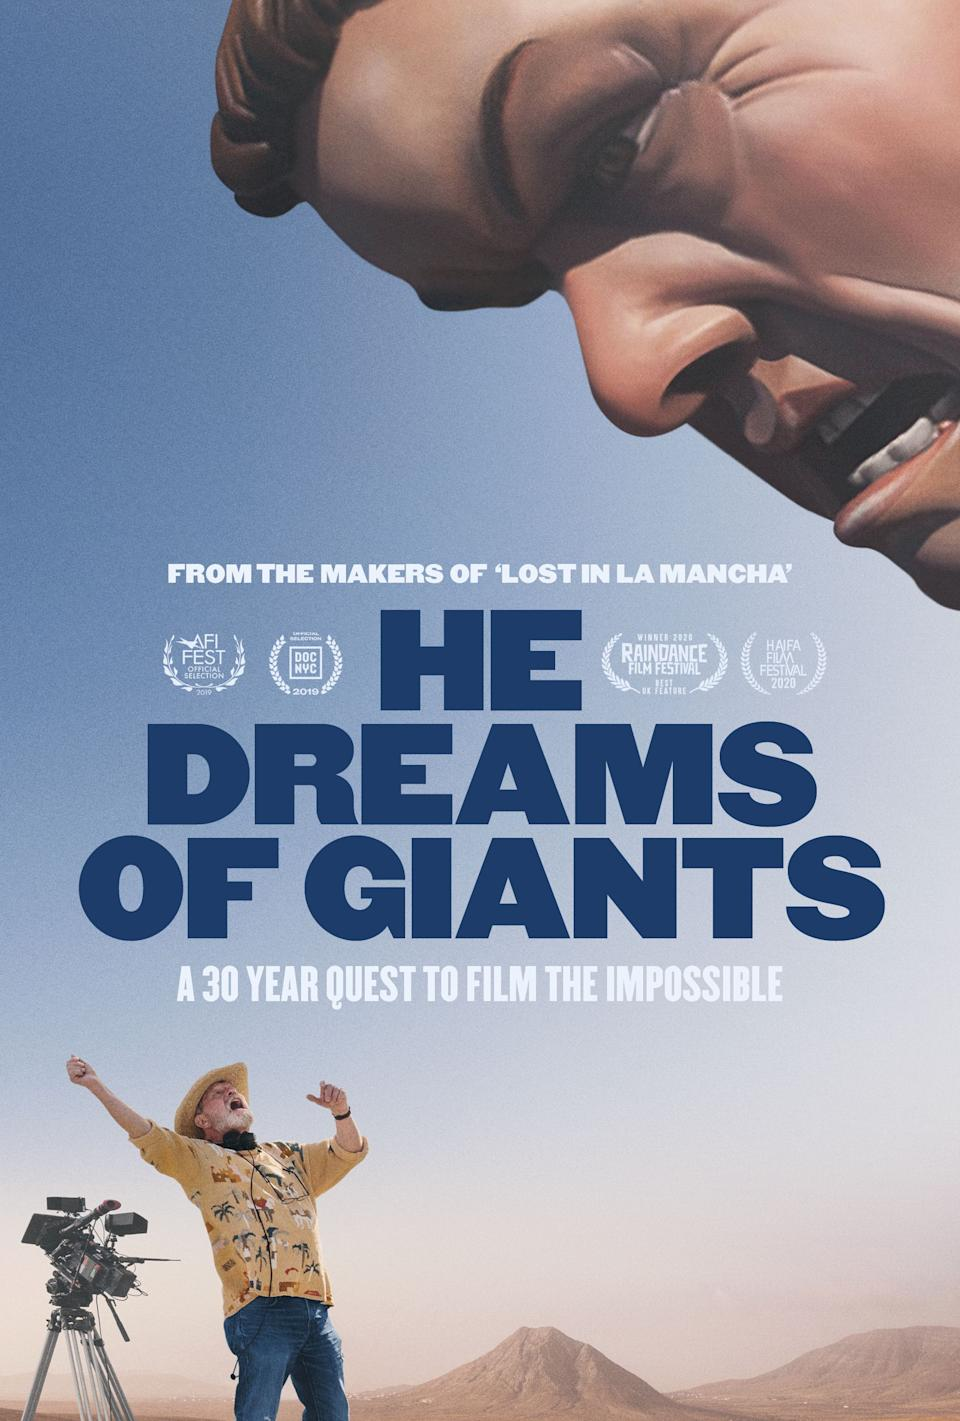 Blue Finch Film Releasing presents He Dreams of Giants on digital platforms 29 March 2021